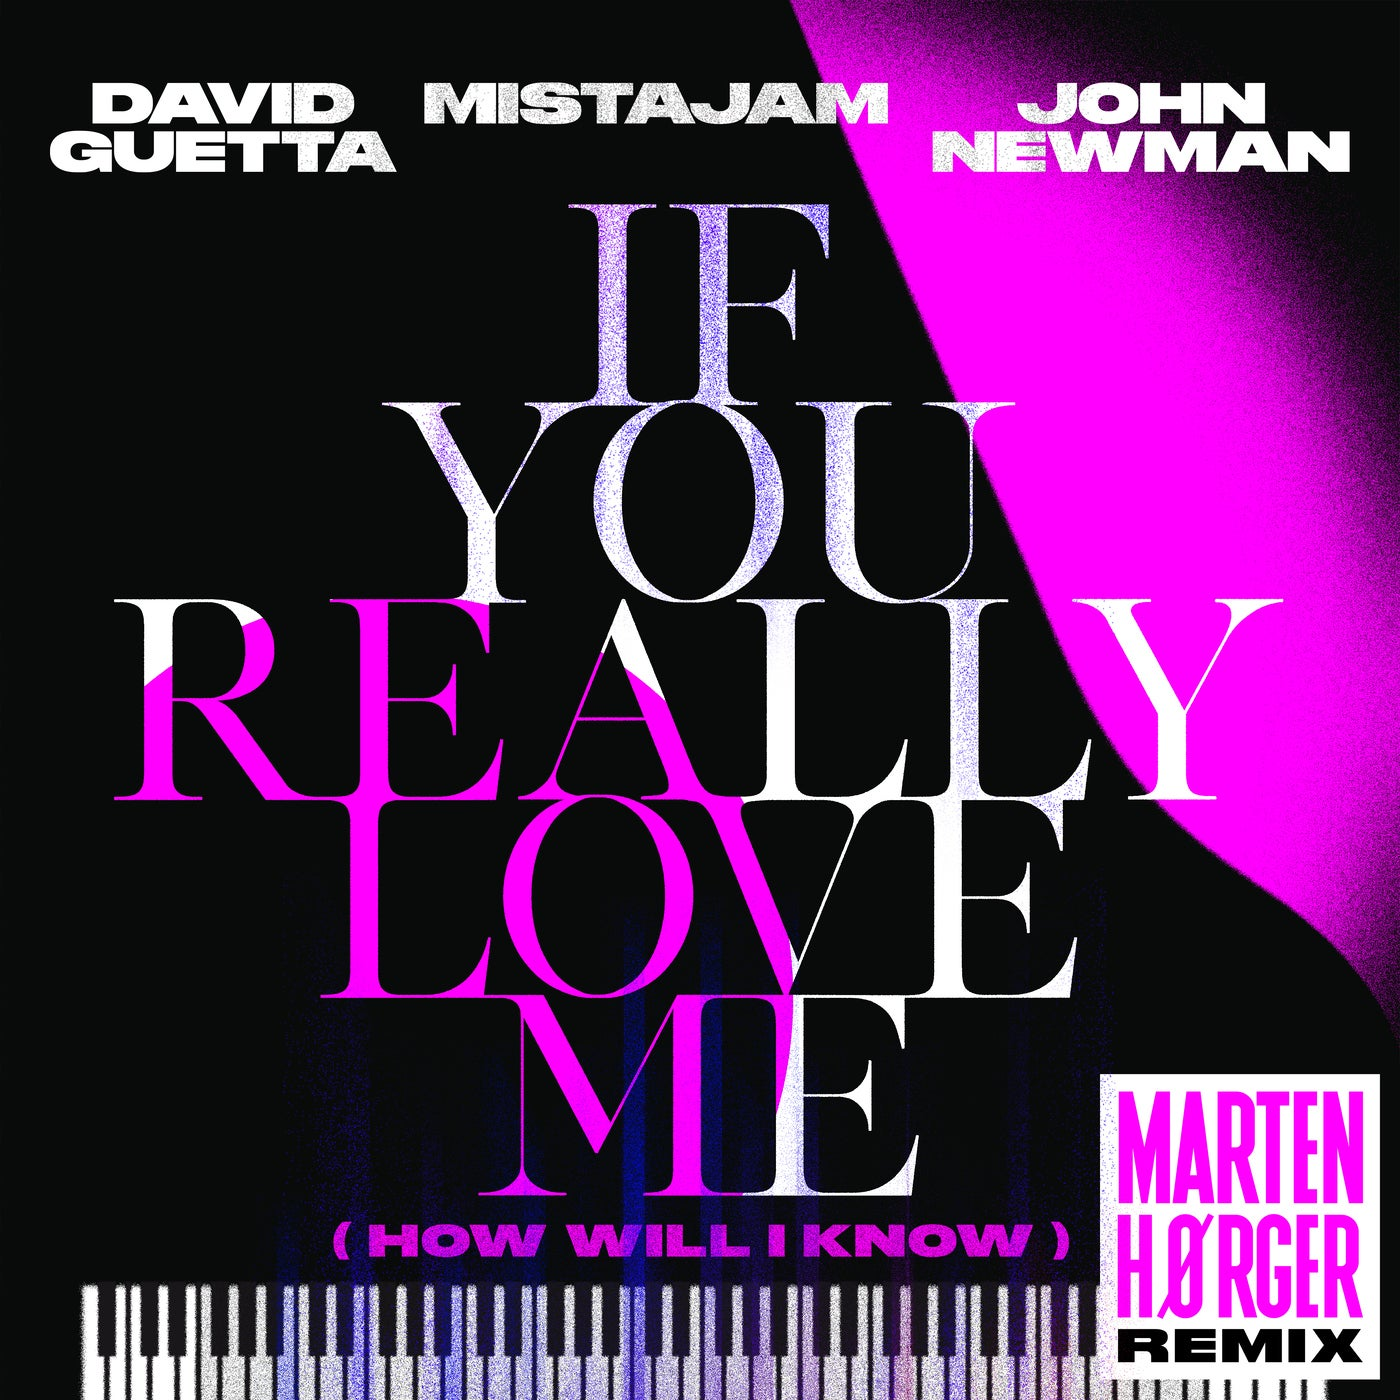 If You Really Love Me (How Will I Know) (Marten Hørger Remix Extended)